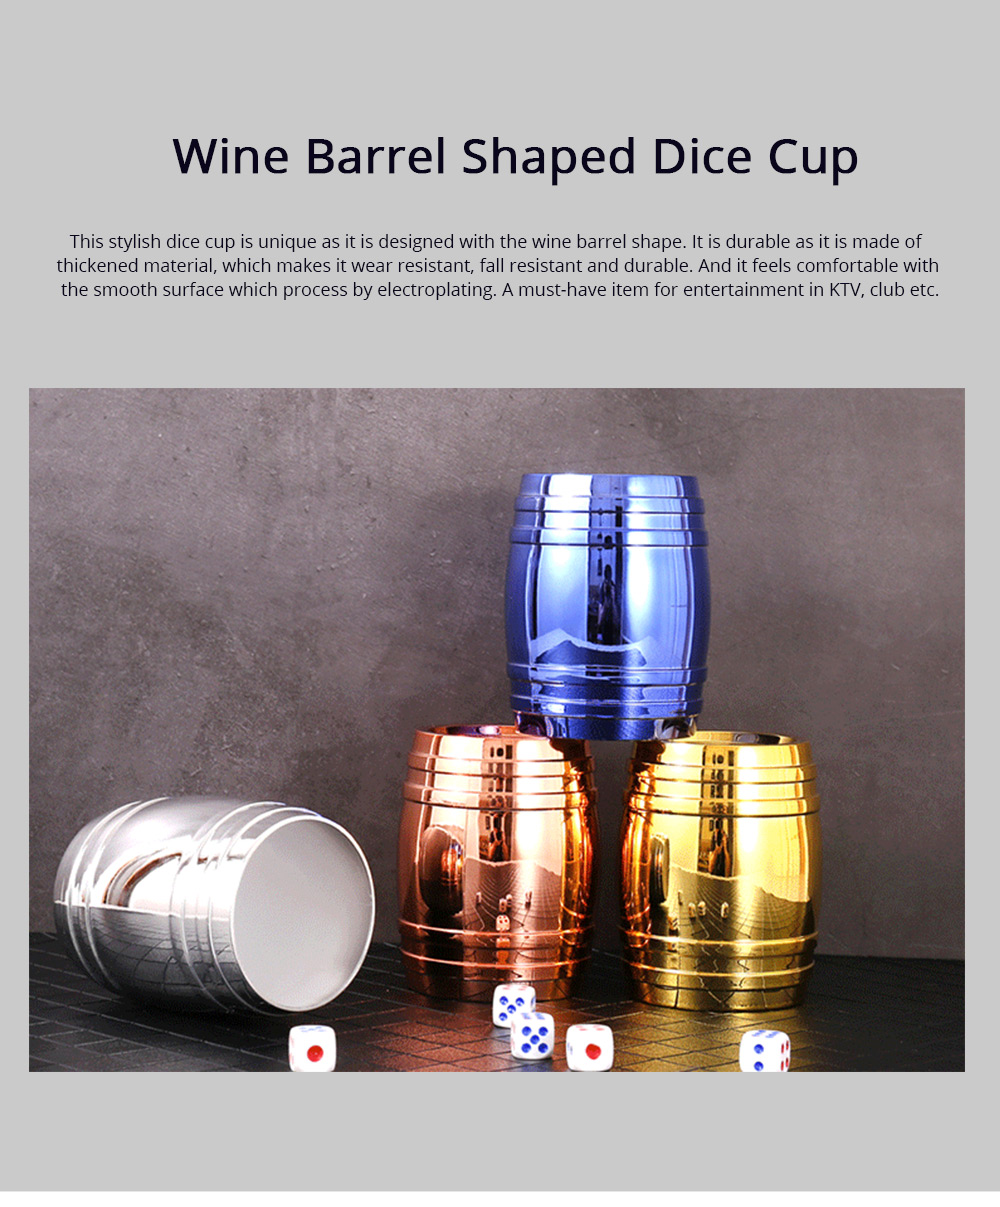 Thicken Dice Cup Fashion Stylish Wine Barrel Shaped Dice Shaker Holder for Playing Dice Games in Bar KTV Nightclub 0